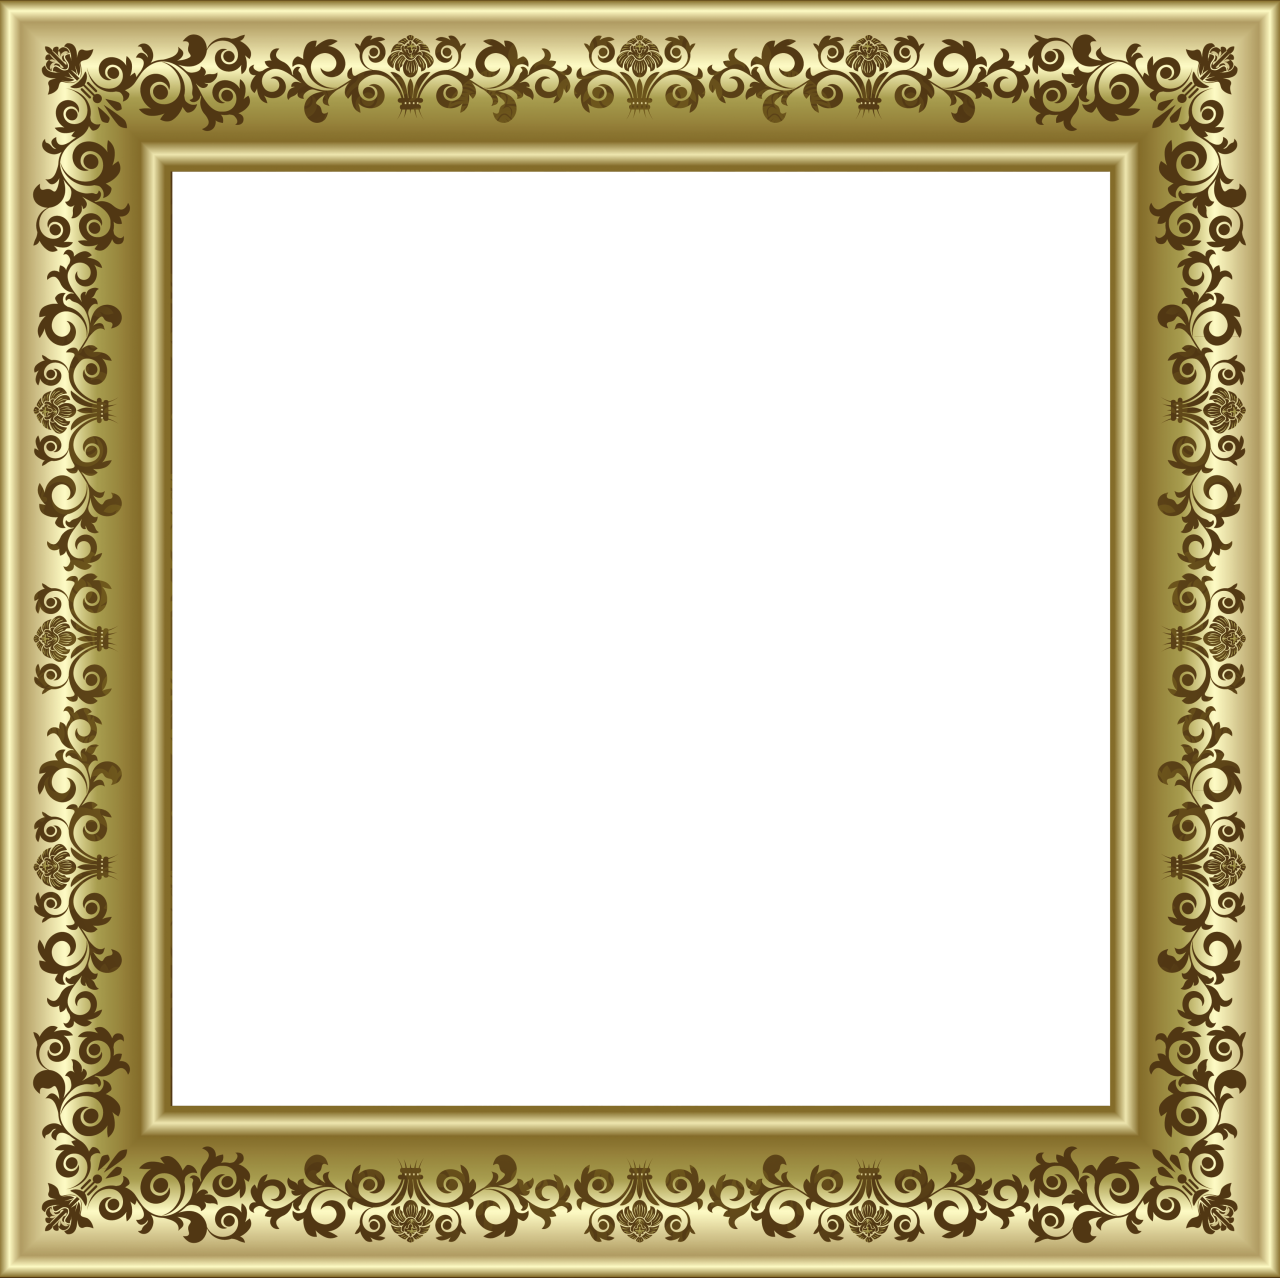 Gold Photo Frame PNG with Brown Ornaments - PNG Frames For Pictures